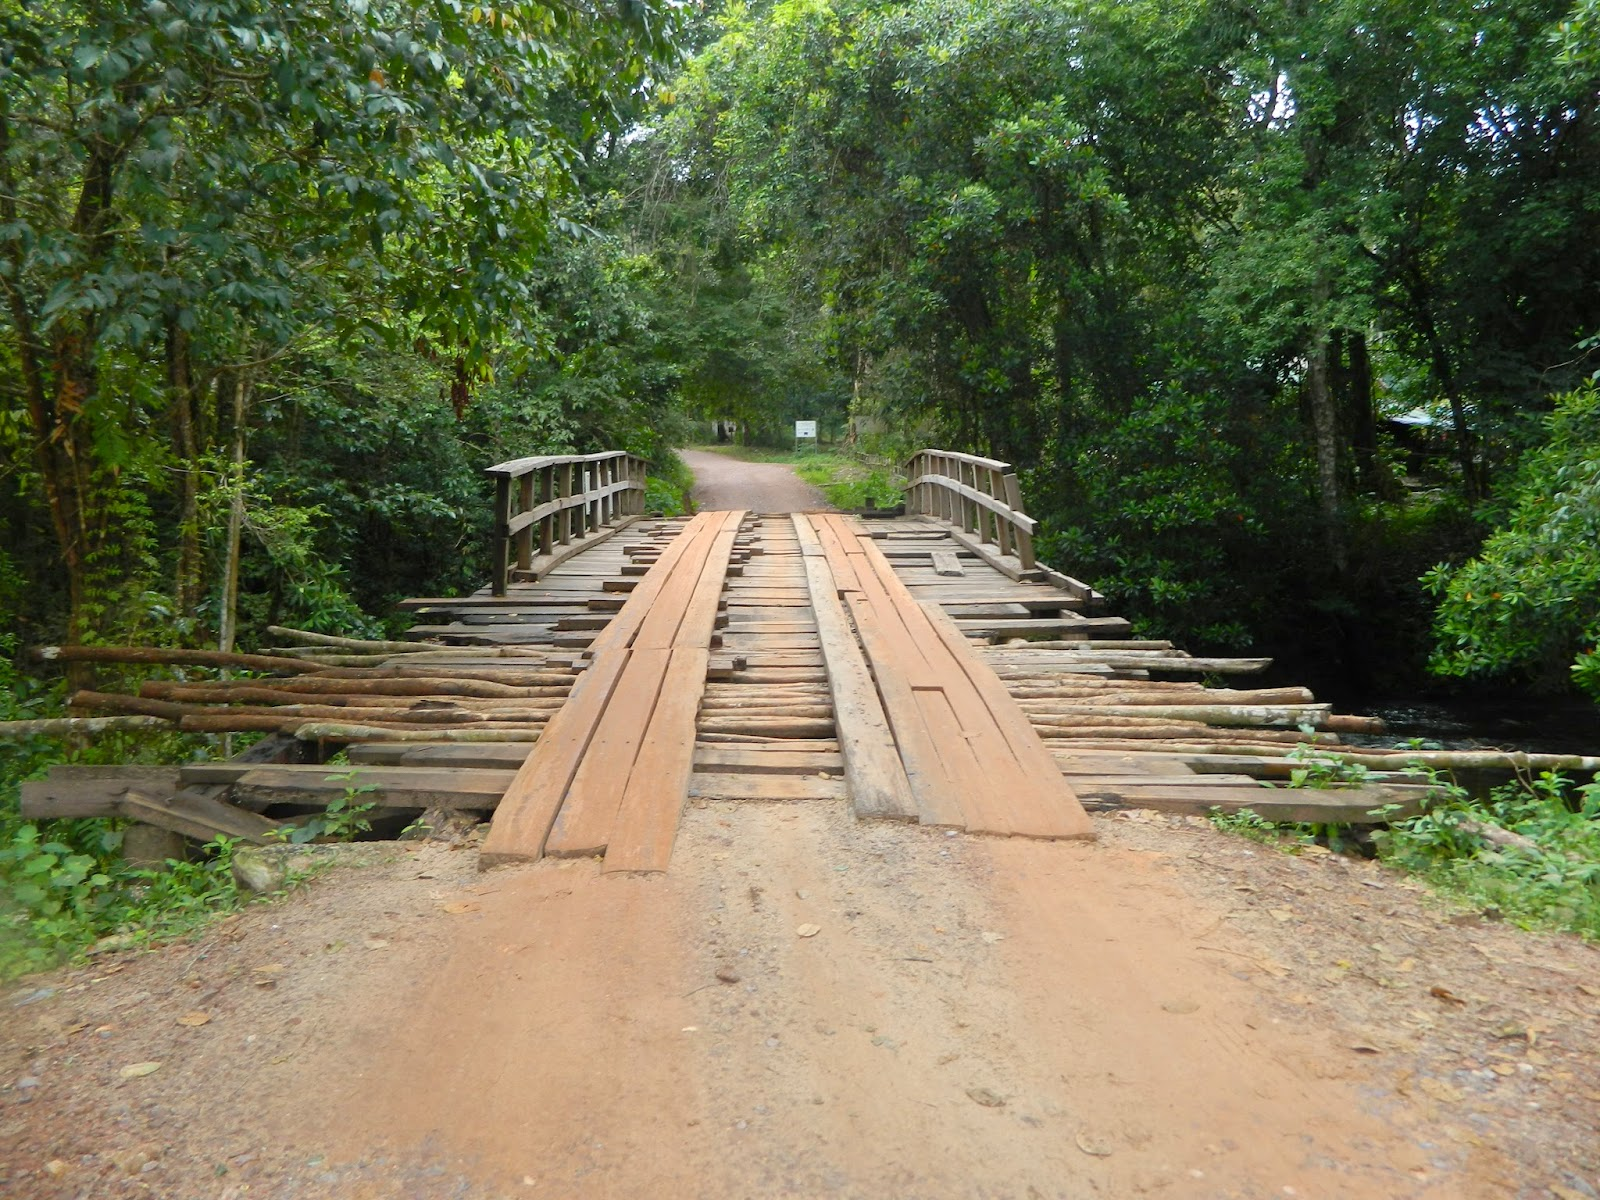 The rickety bridge experience at Kulen mountains